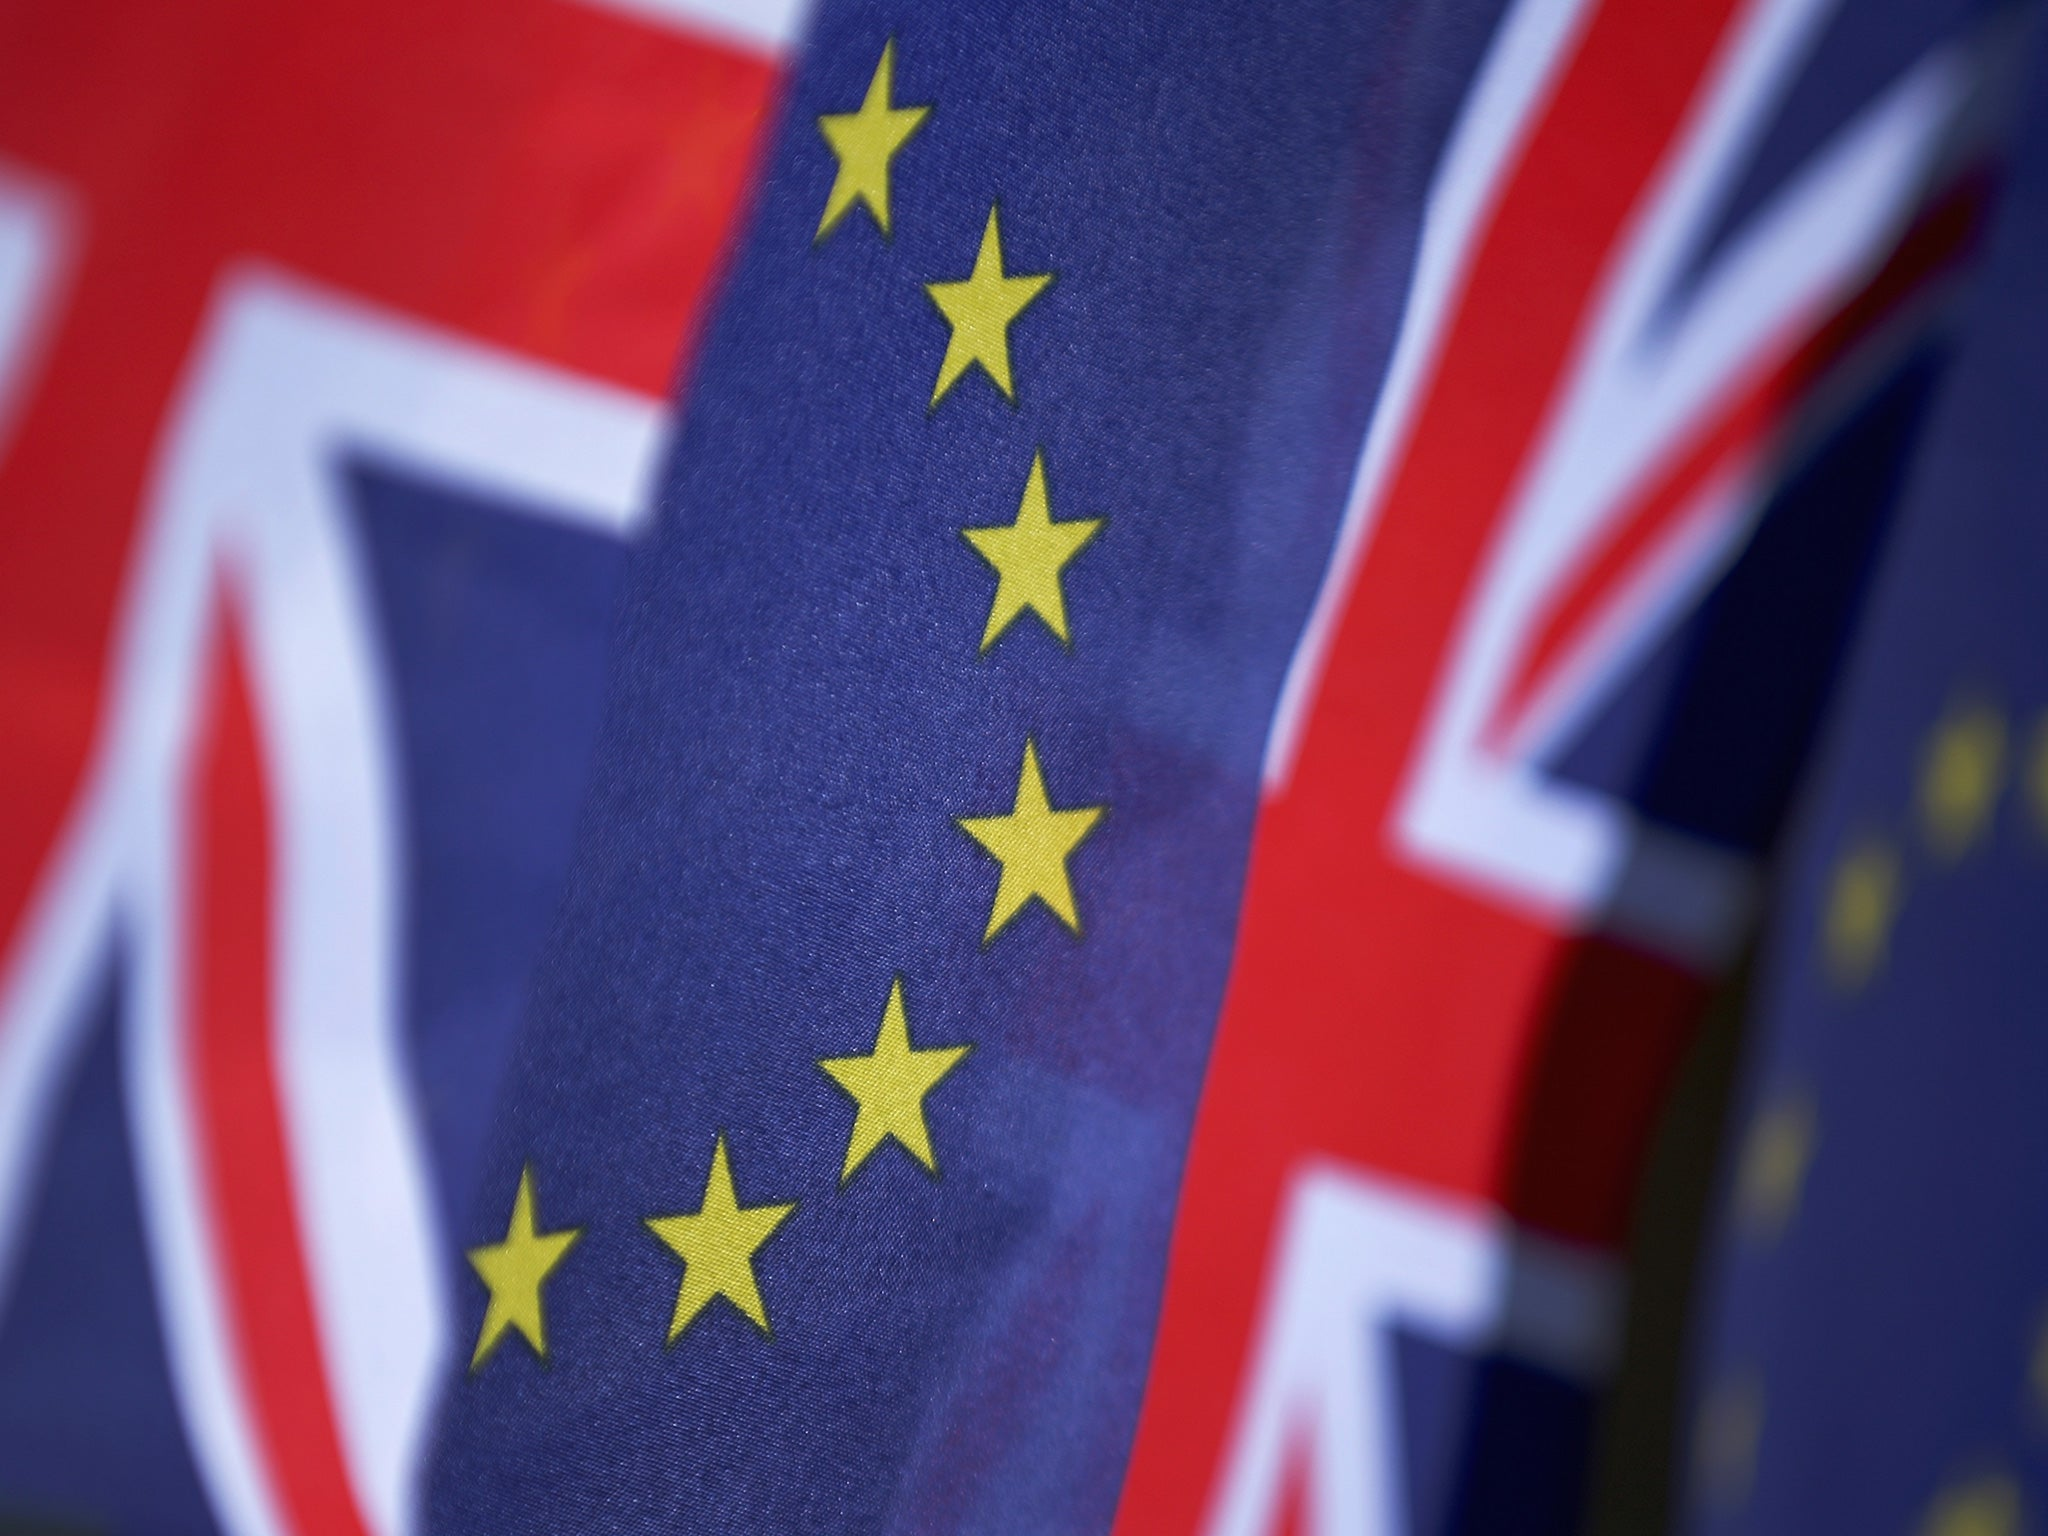 britain and the eu The economist's coverage of the brexit referendum and what it means for britain, europe and the world our cookie policy has changed review our cookies policy for more details and to change your.